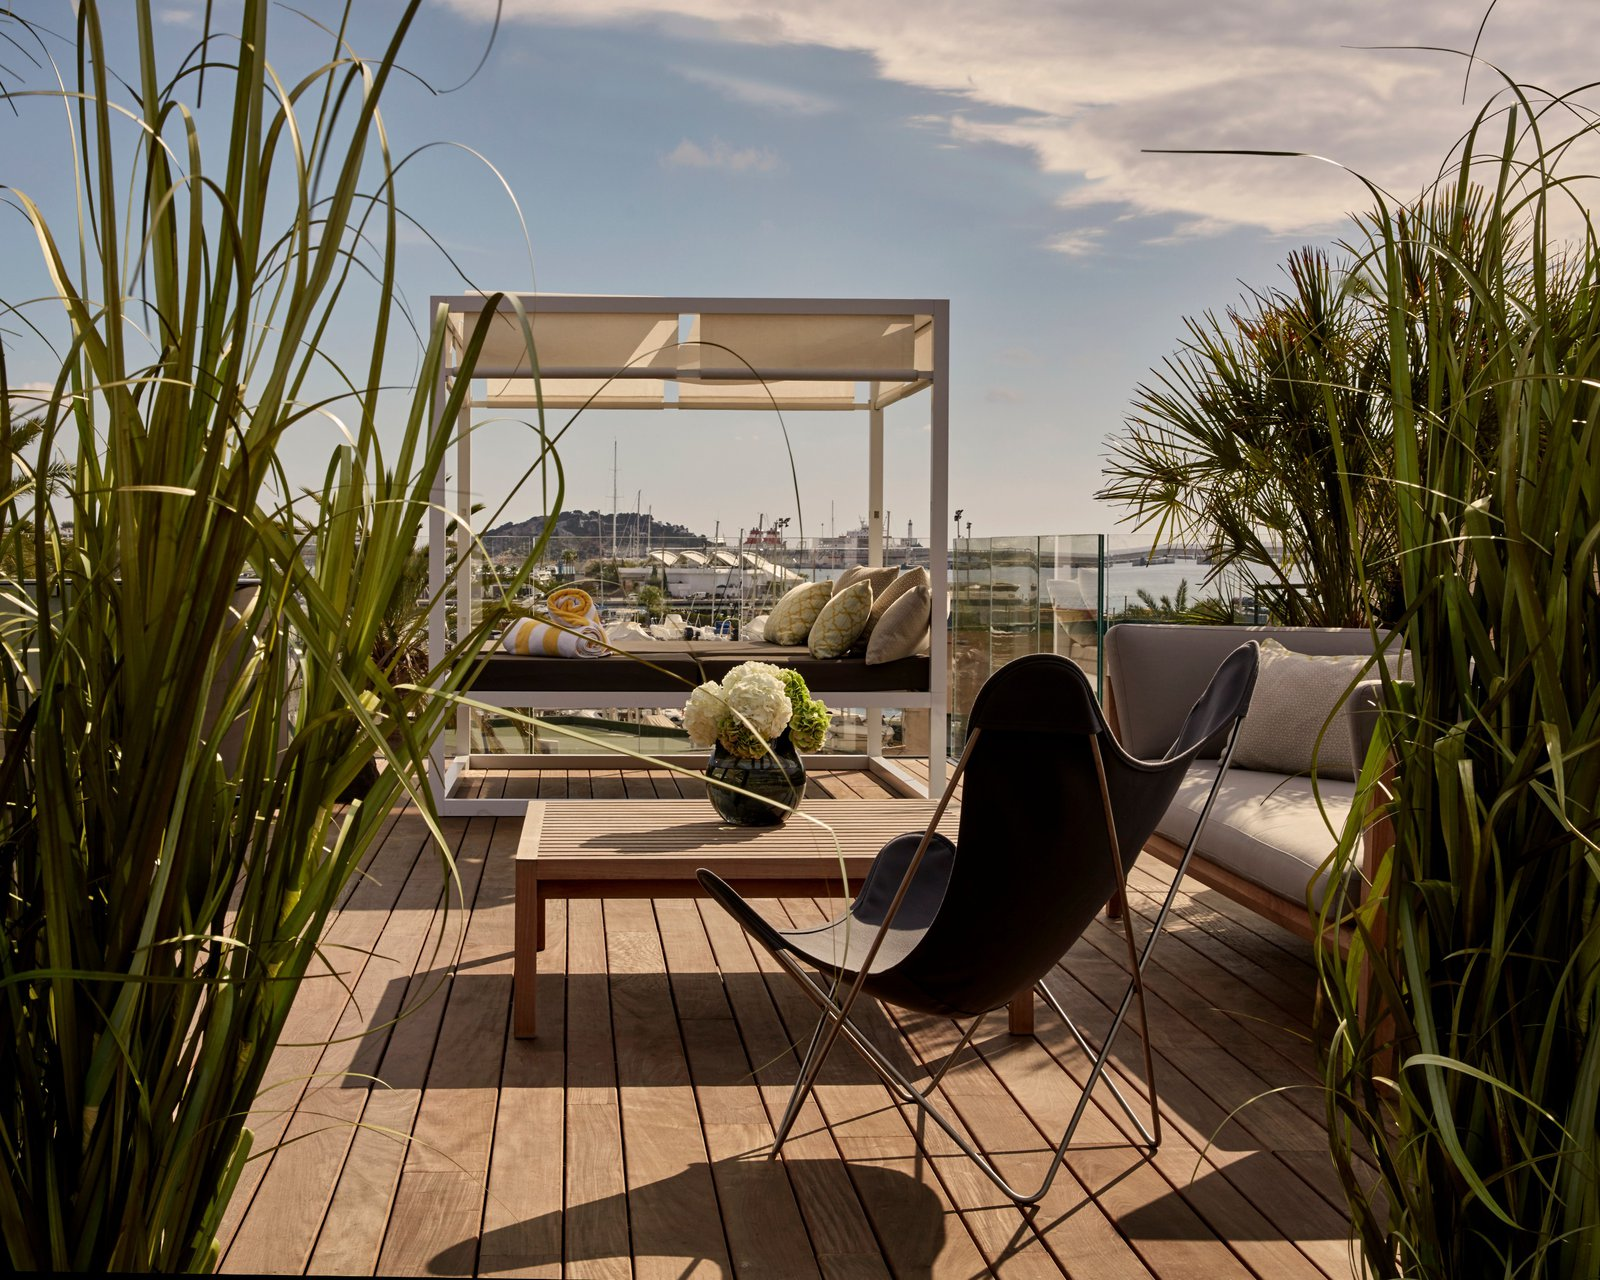 sir-joan-ibiza-room-penthouse.jpg